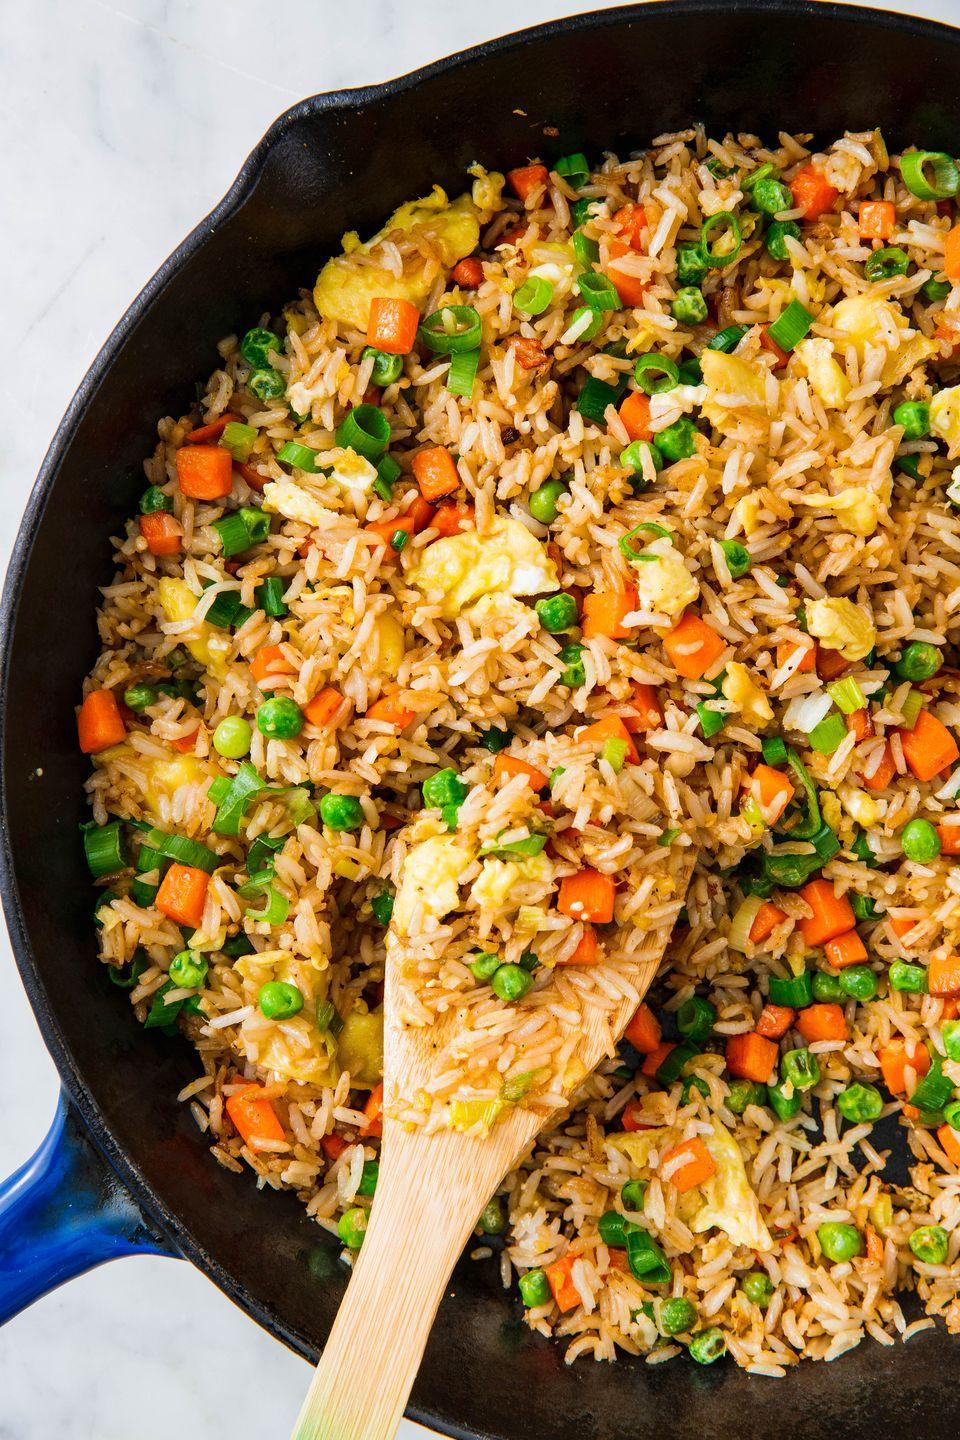 """<p>Go ahead—toss your takeout menus.</p><p><span class=""""redactor-invisible-space"""">Get the recipe from <a href=""""https://www.delish.com/cooking/recipe-ideas/a25325036/how-to-make-fried-rice/"""" rel=""""nofollow noopener"""" target=""""_blank"""" data-ylk=""""slk:Delish"""" class=""""link rapid-noclick-resp"""">Delish</a>.</span></p>"""